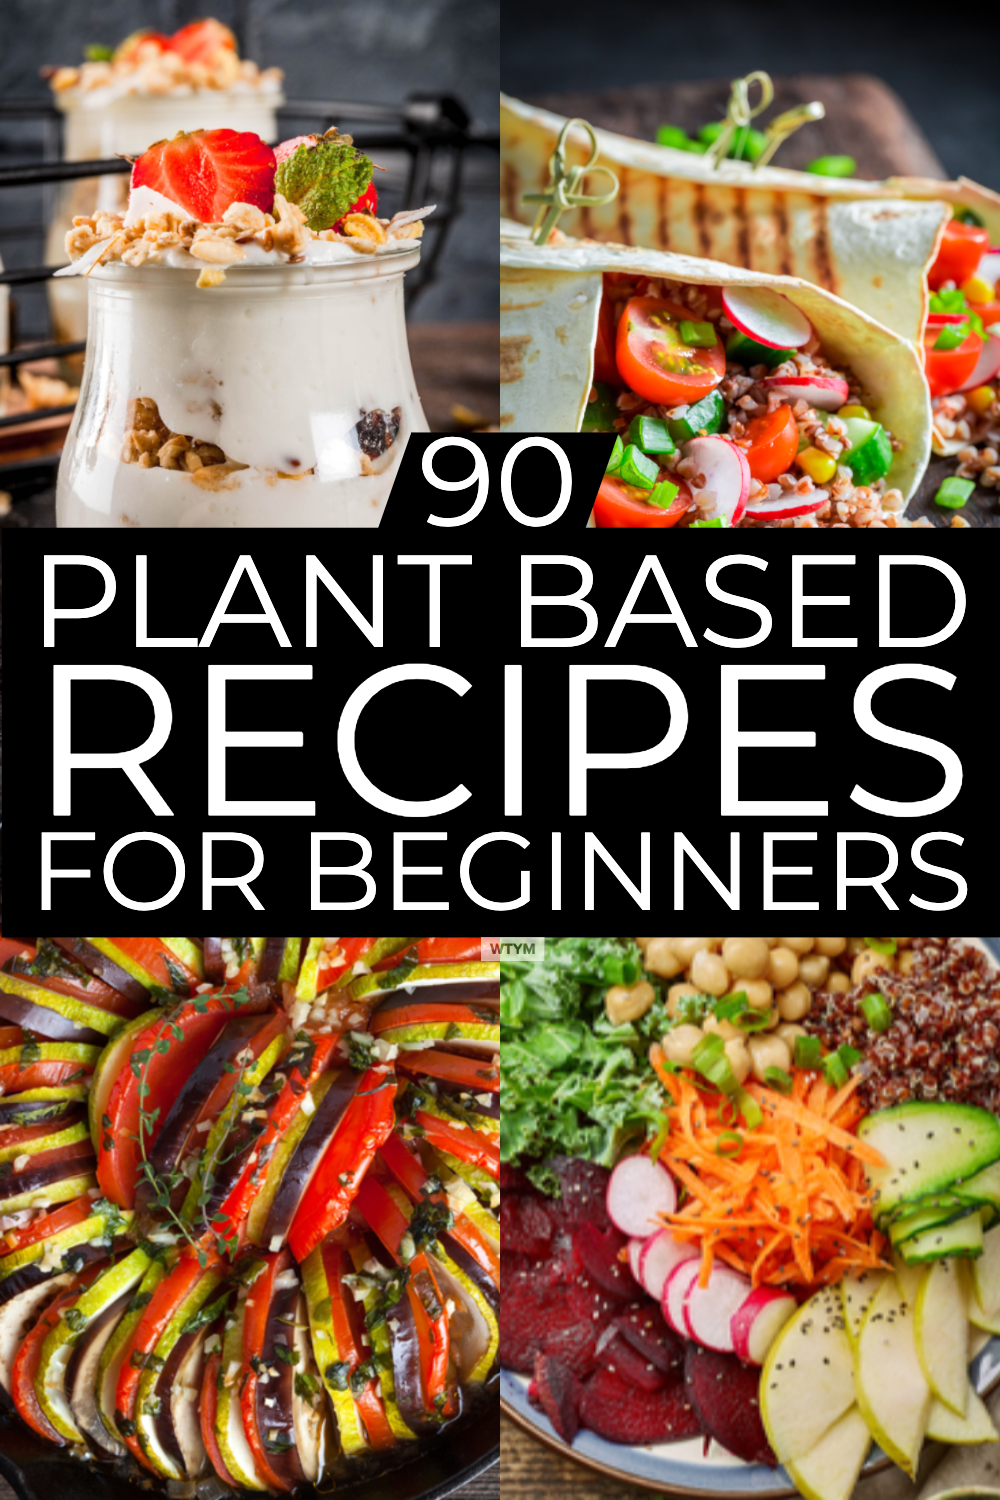 Plant Based Diet Meal Plan For Beginners If You Re Looking For Tips On How To Start Plant Based Diet Recipes Plant Based Diet Meal Plan Plant Based Diet Meals